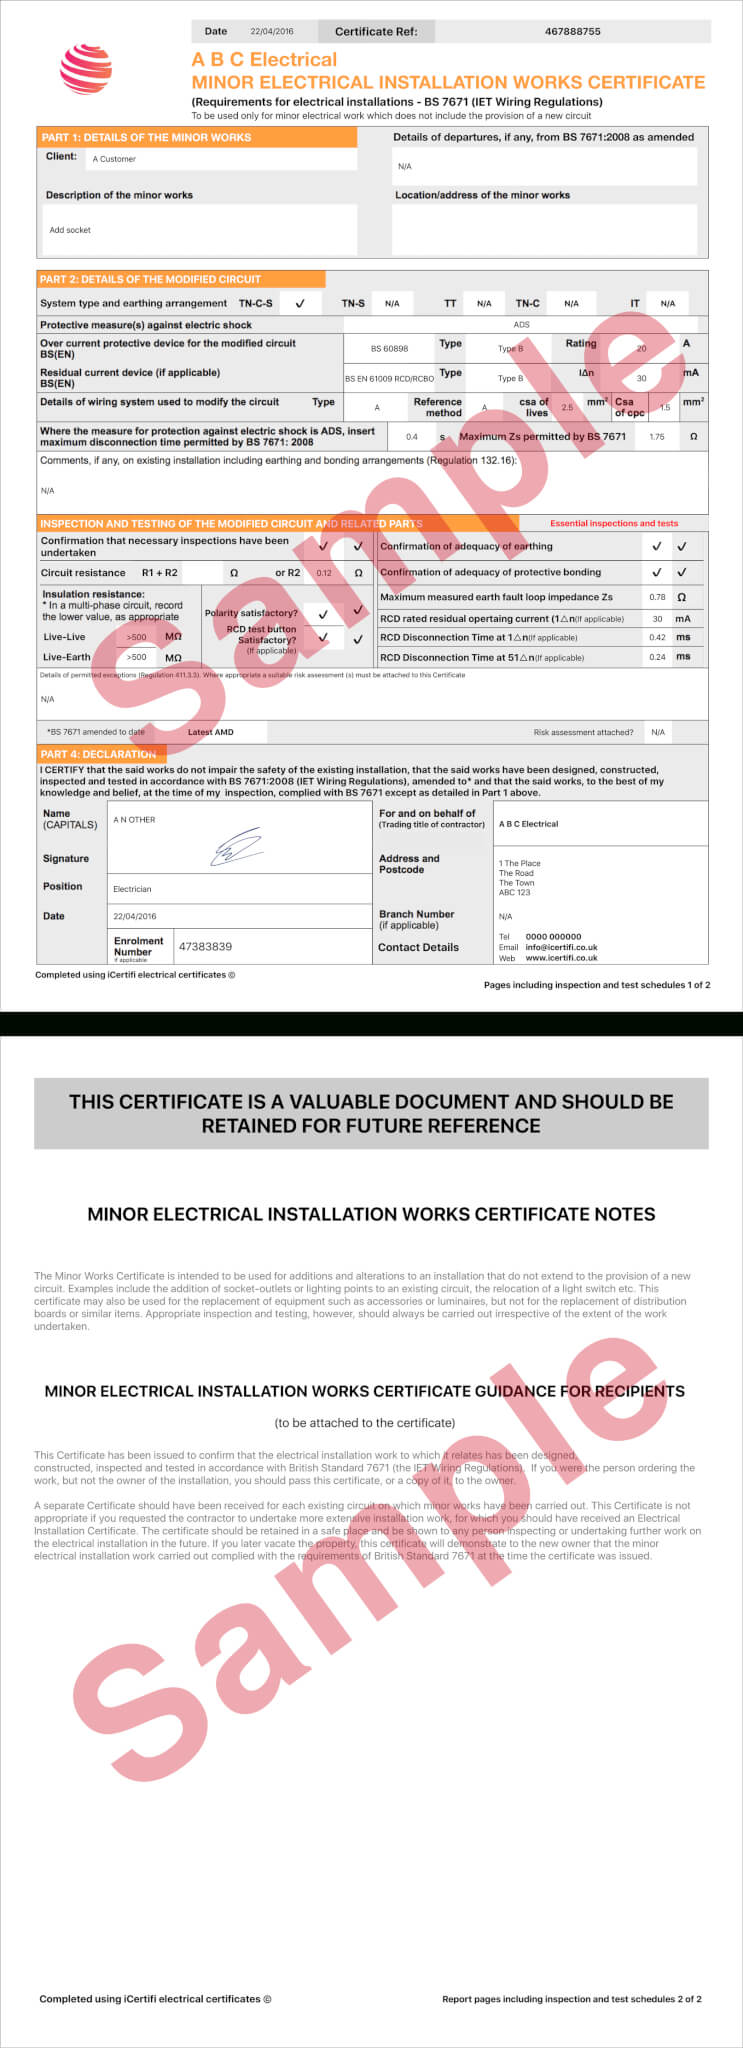 Electrical Certificate - Example Minor Works Certificate For Electrical Minor Works Certificate Template